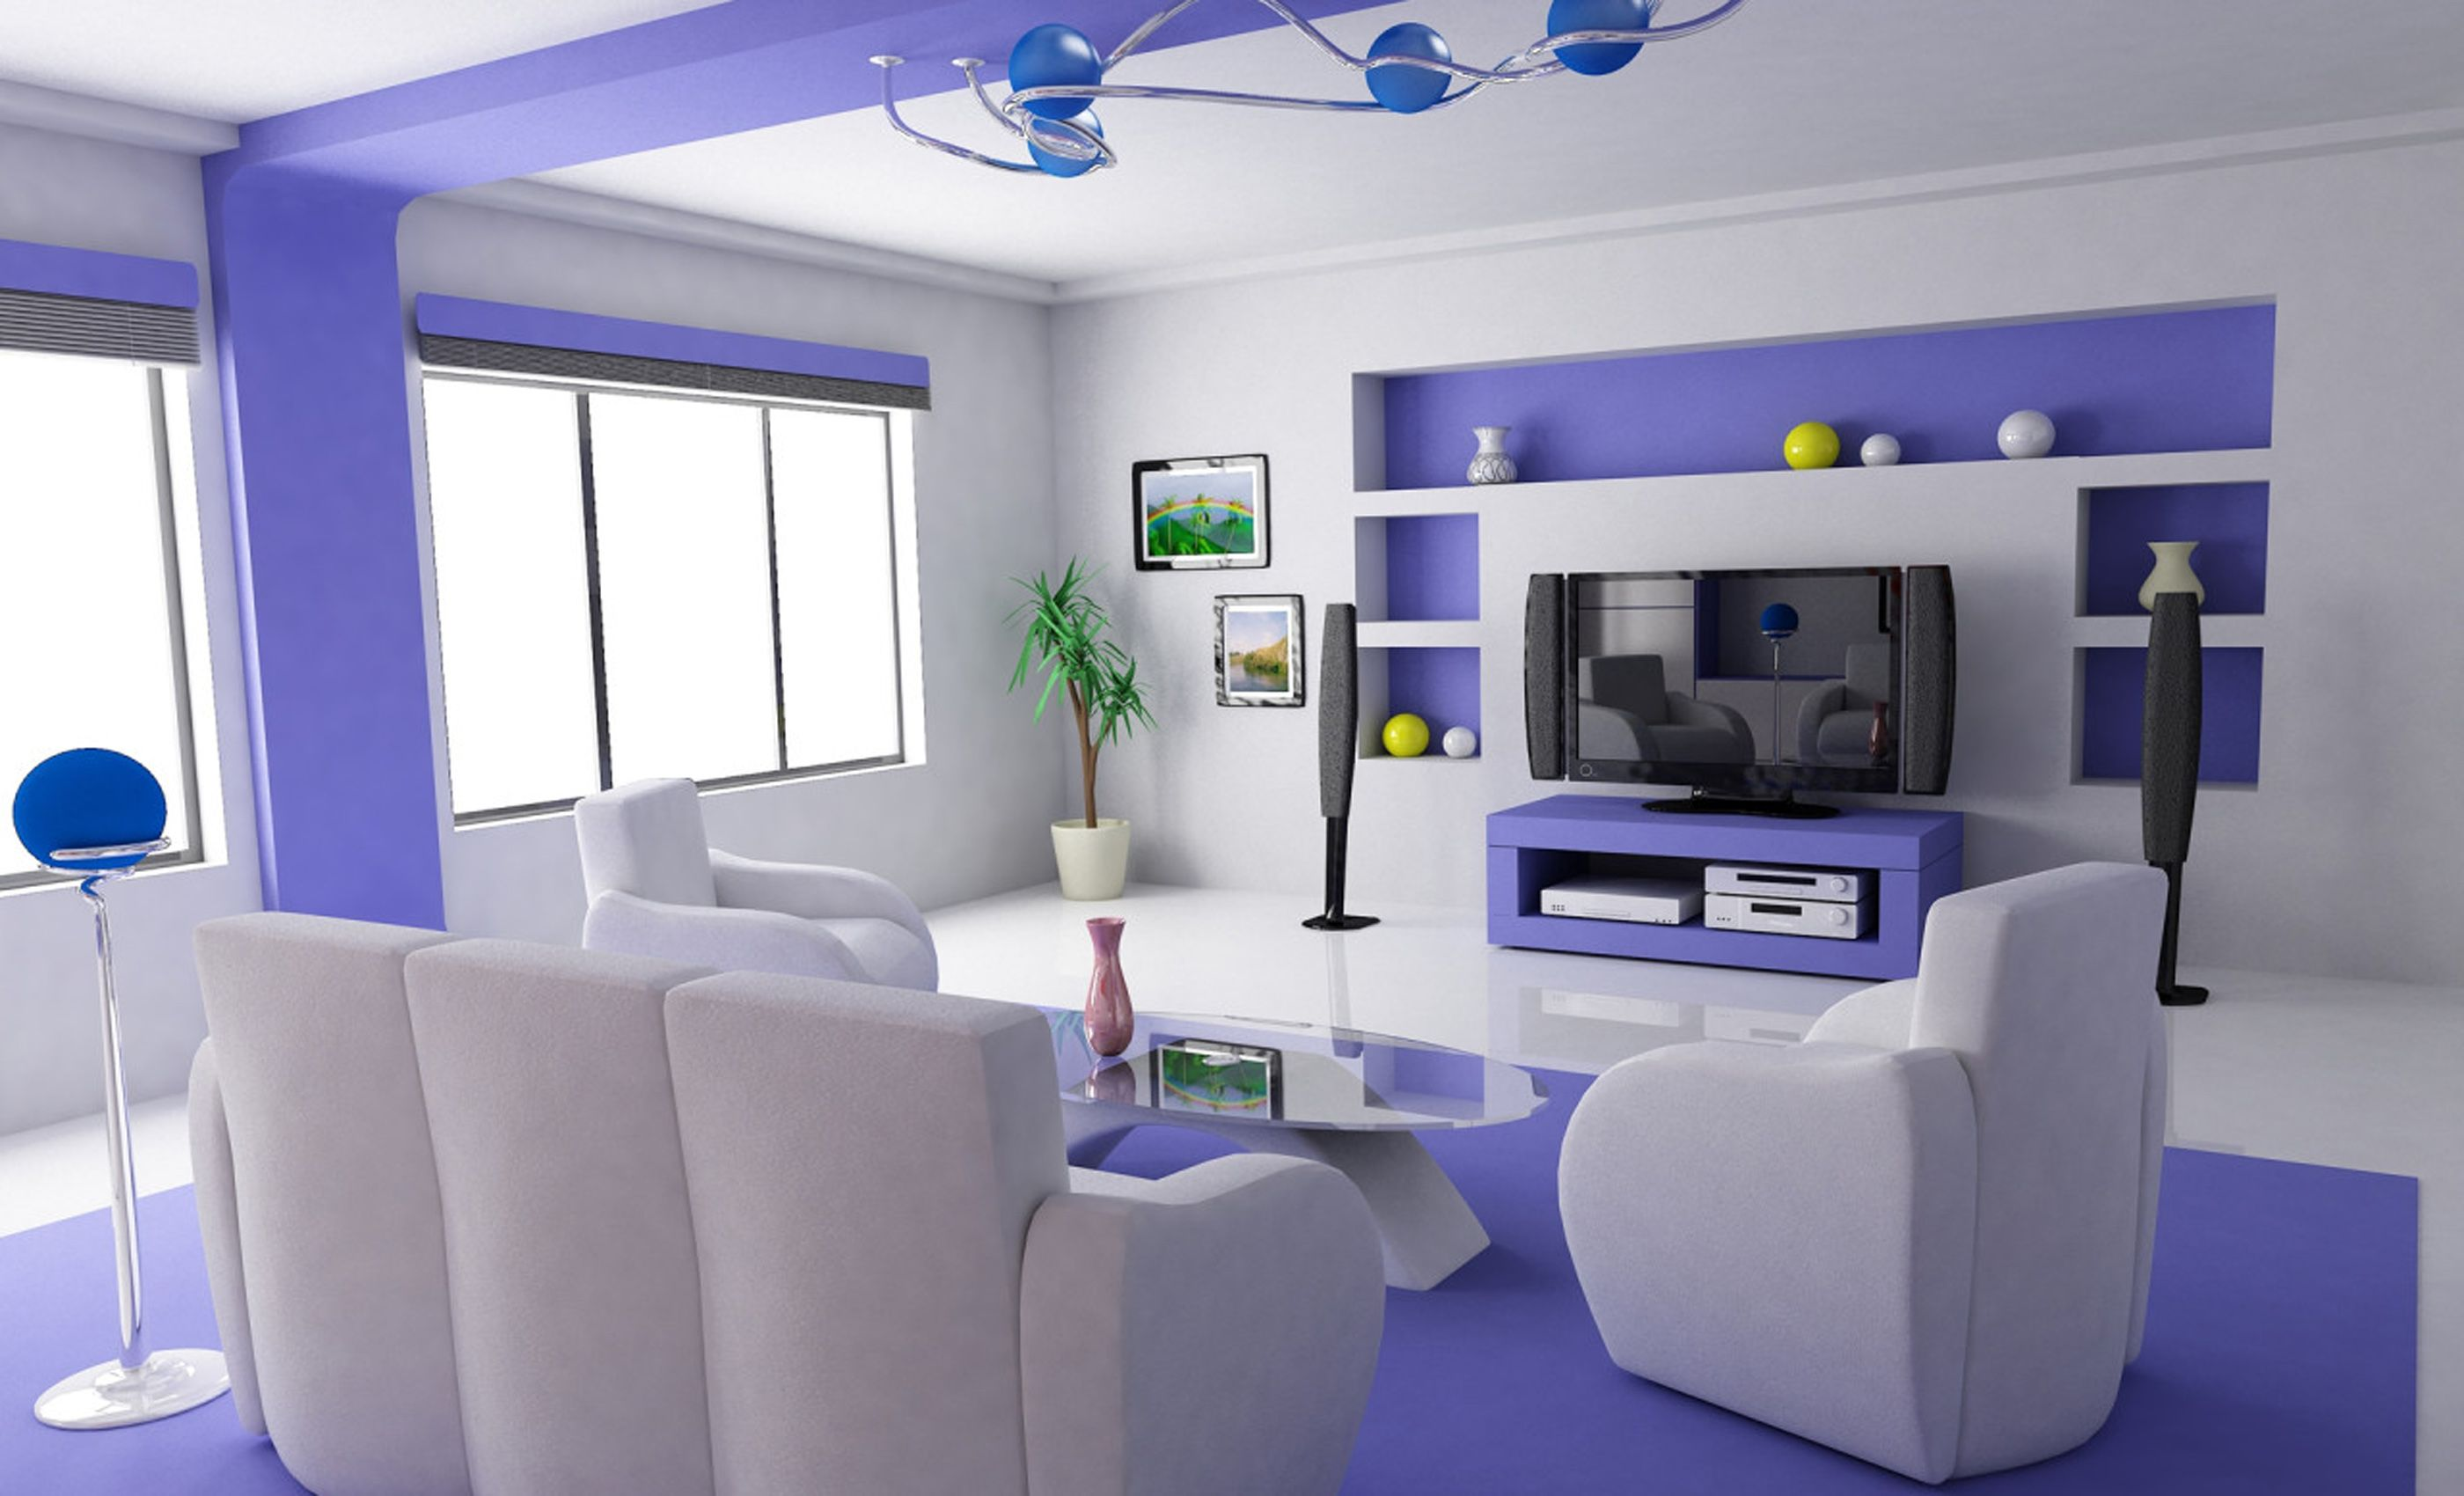 White stripes futuristic living room interior design integrated led - Bedroom Neutral Interior Design Bright Room Futuristic Chicism With Ultra Modern White Sofa And Blue Rug